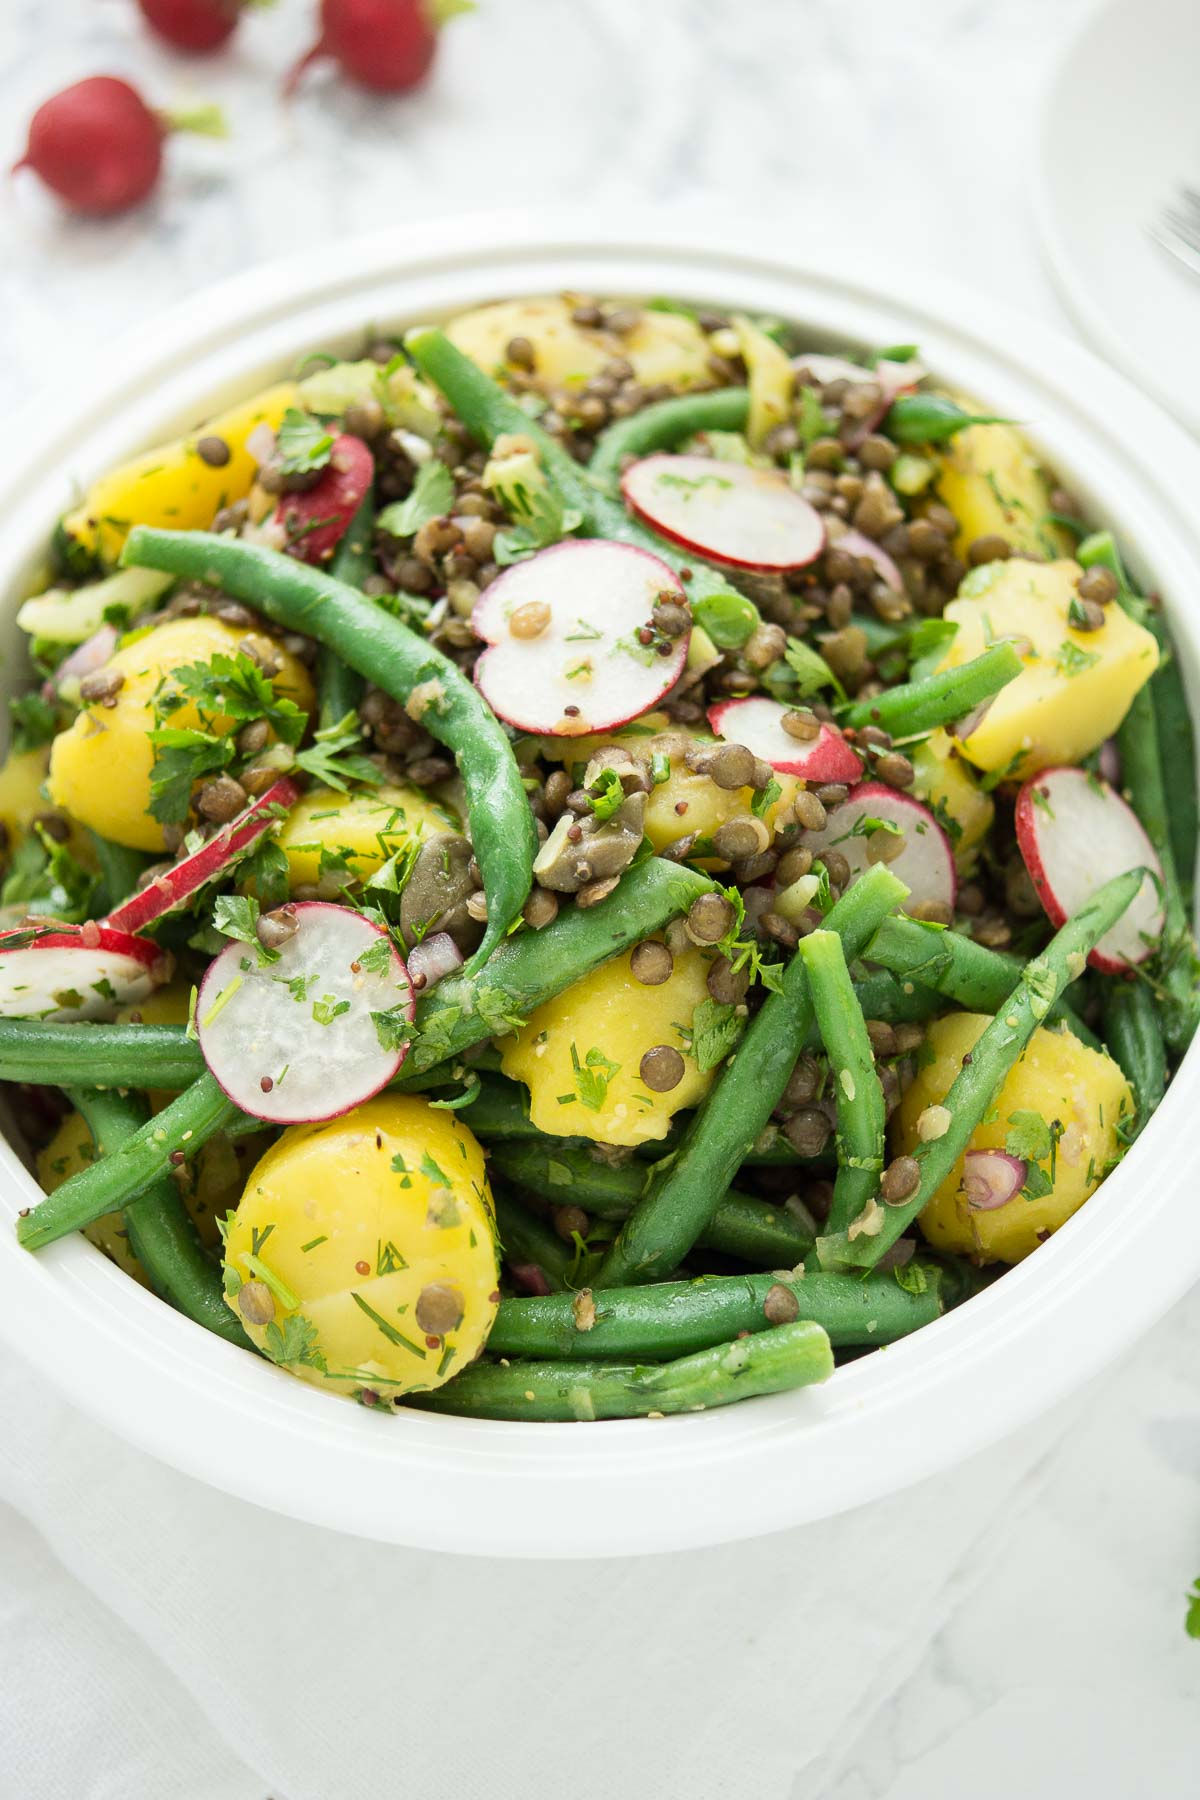 Lentil, Green Bean and Potato Salad